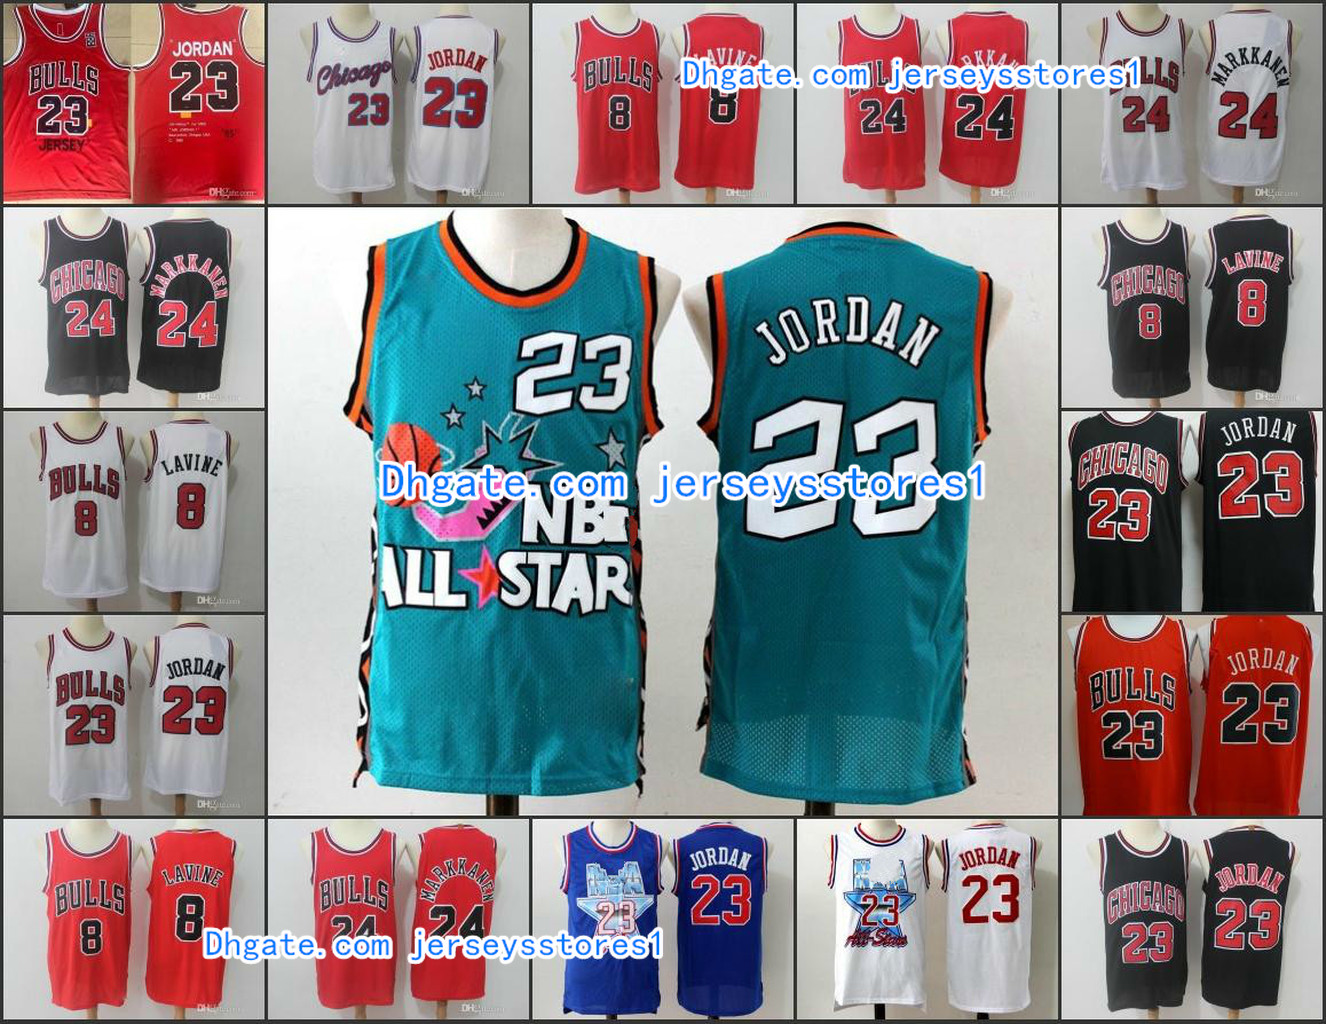 Authentic Basketball Jerseys Black Friday & Cyber Monday deals